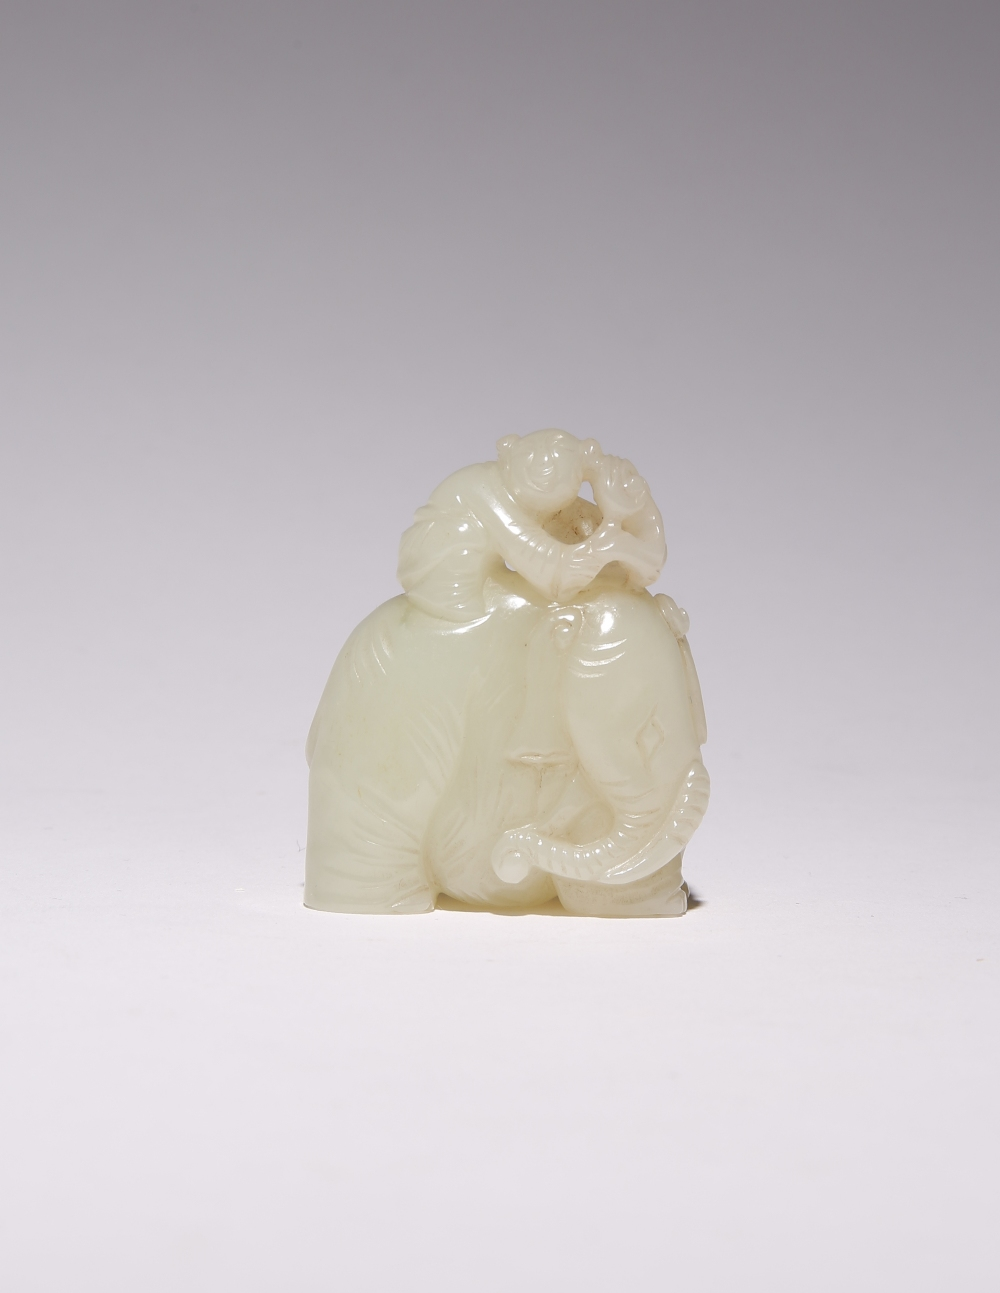 A CHINESE PALE CELADON JADE CARVING OF AN ELEPHANT QING DYNASTY OR LATER Formed as a small boy